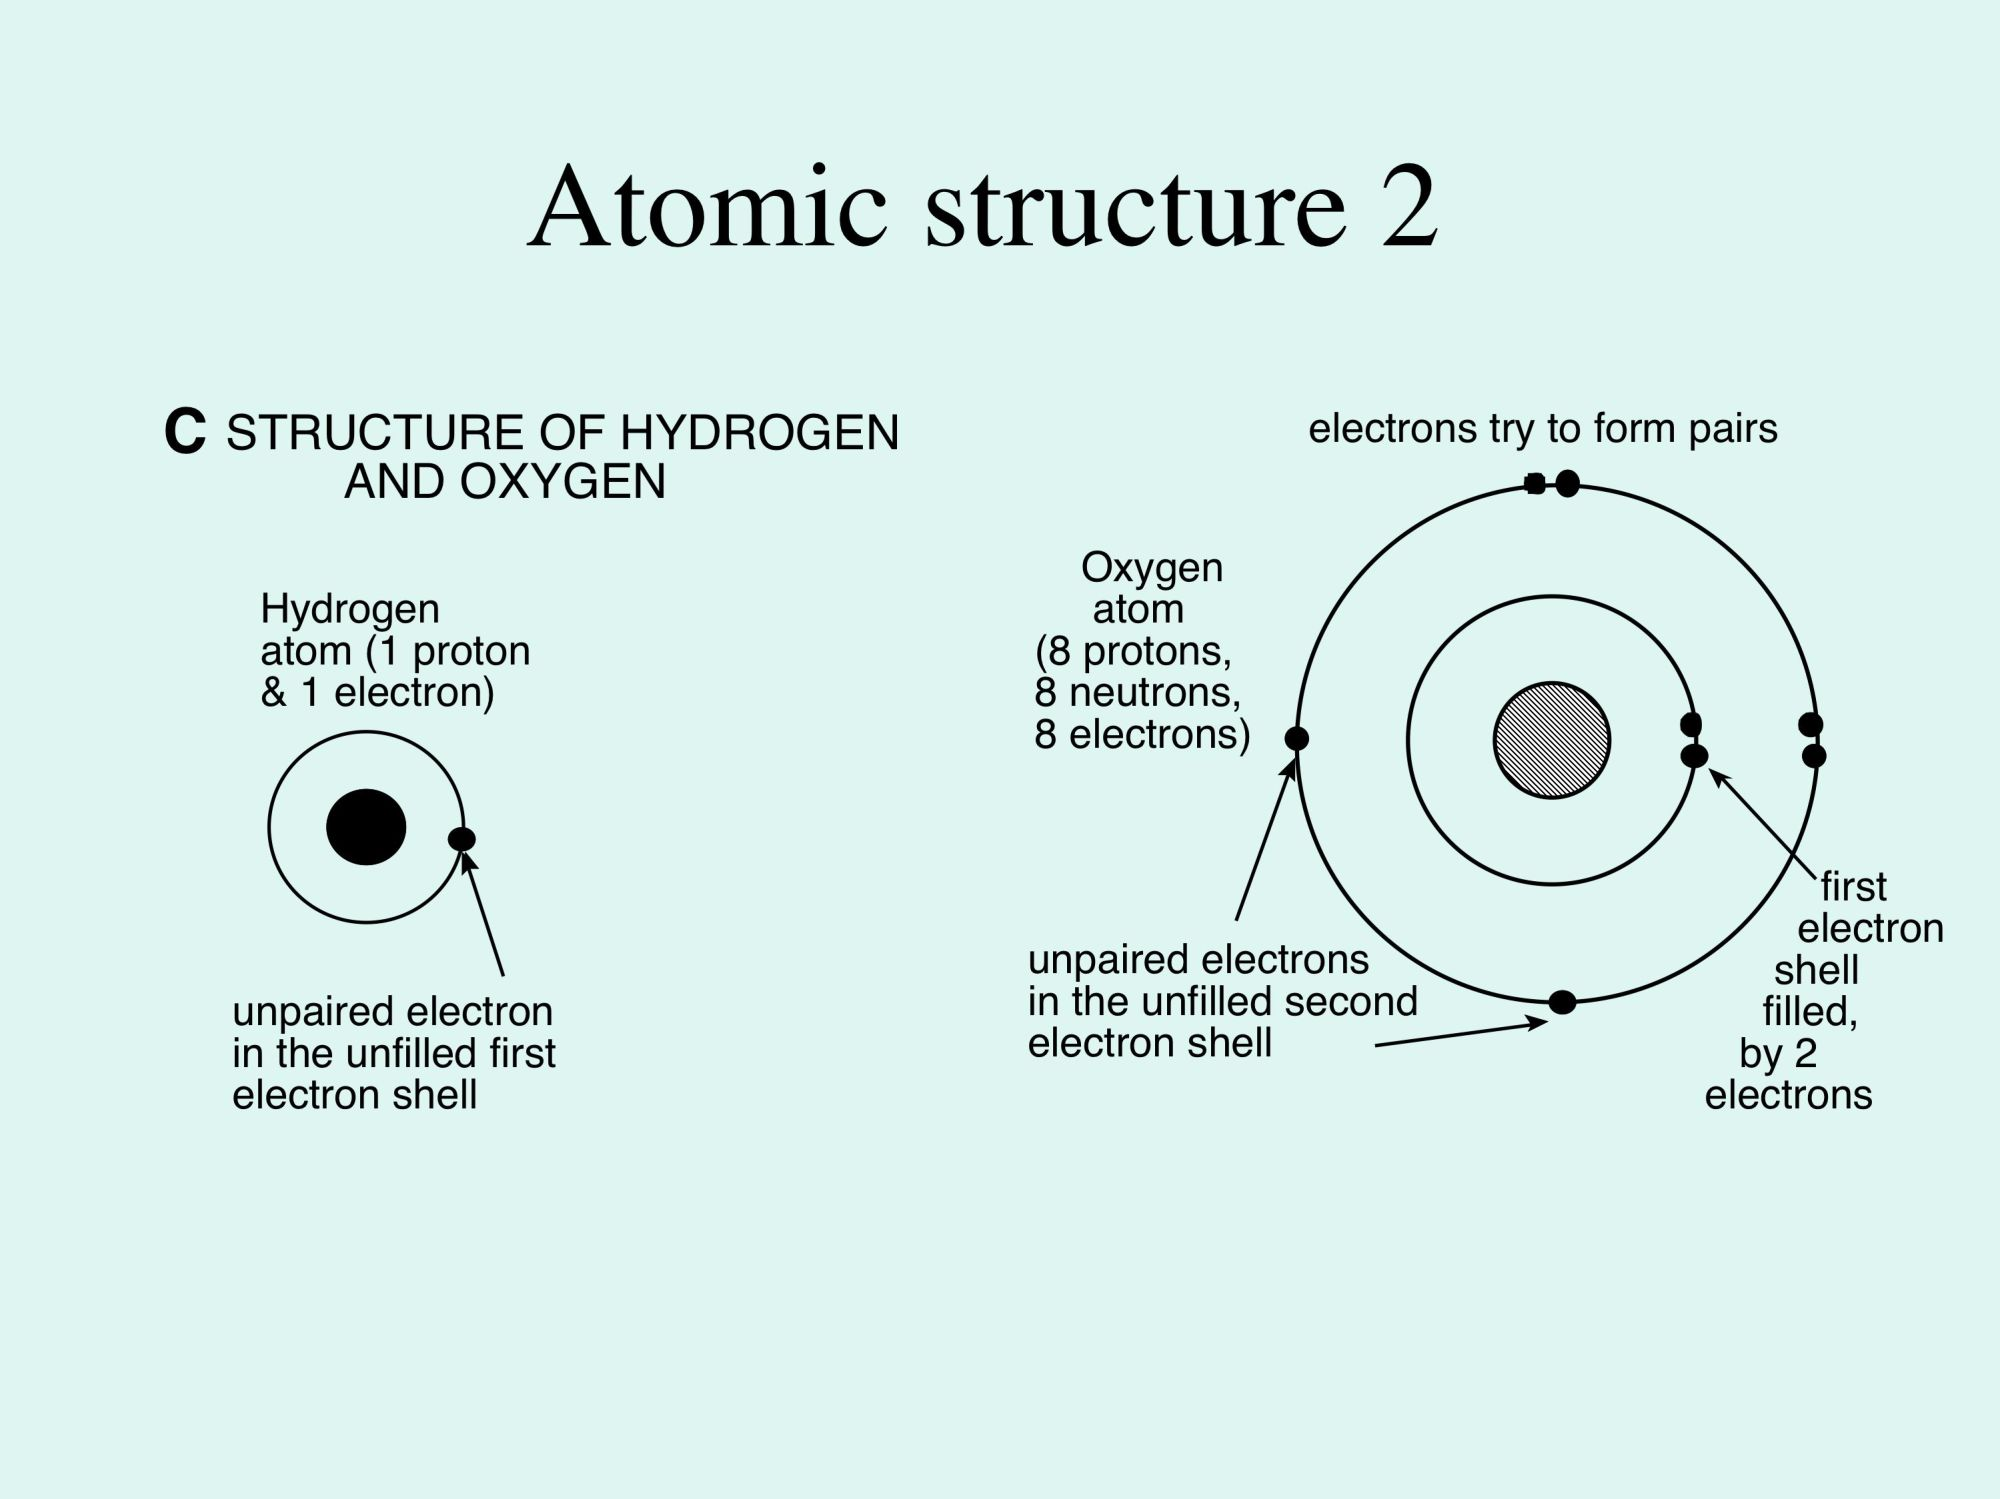 hight resolution of figure 1c this shows the atomic structure of hydrogen and oxygen in each case the nucleus consists of the essential protons one for hydrogen and 8 for